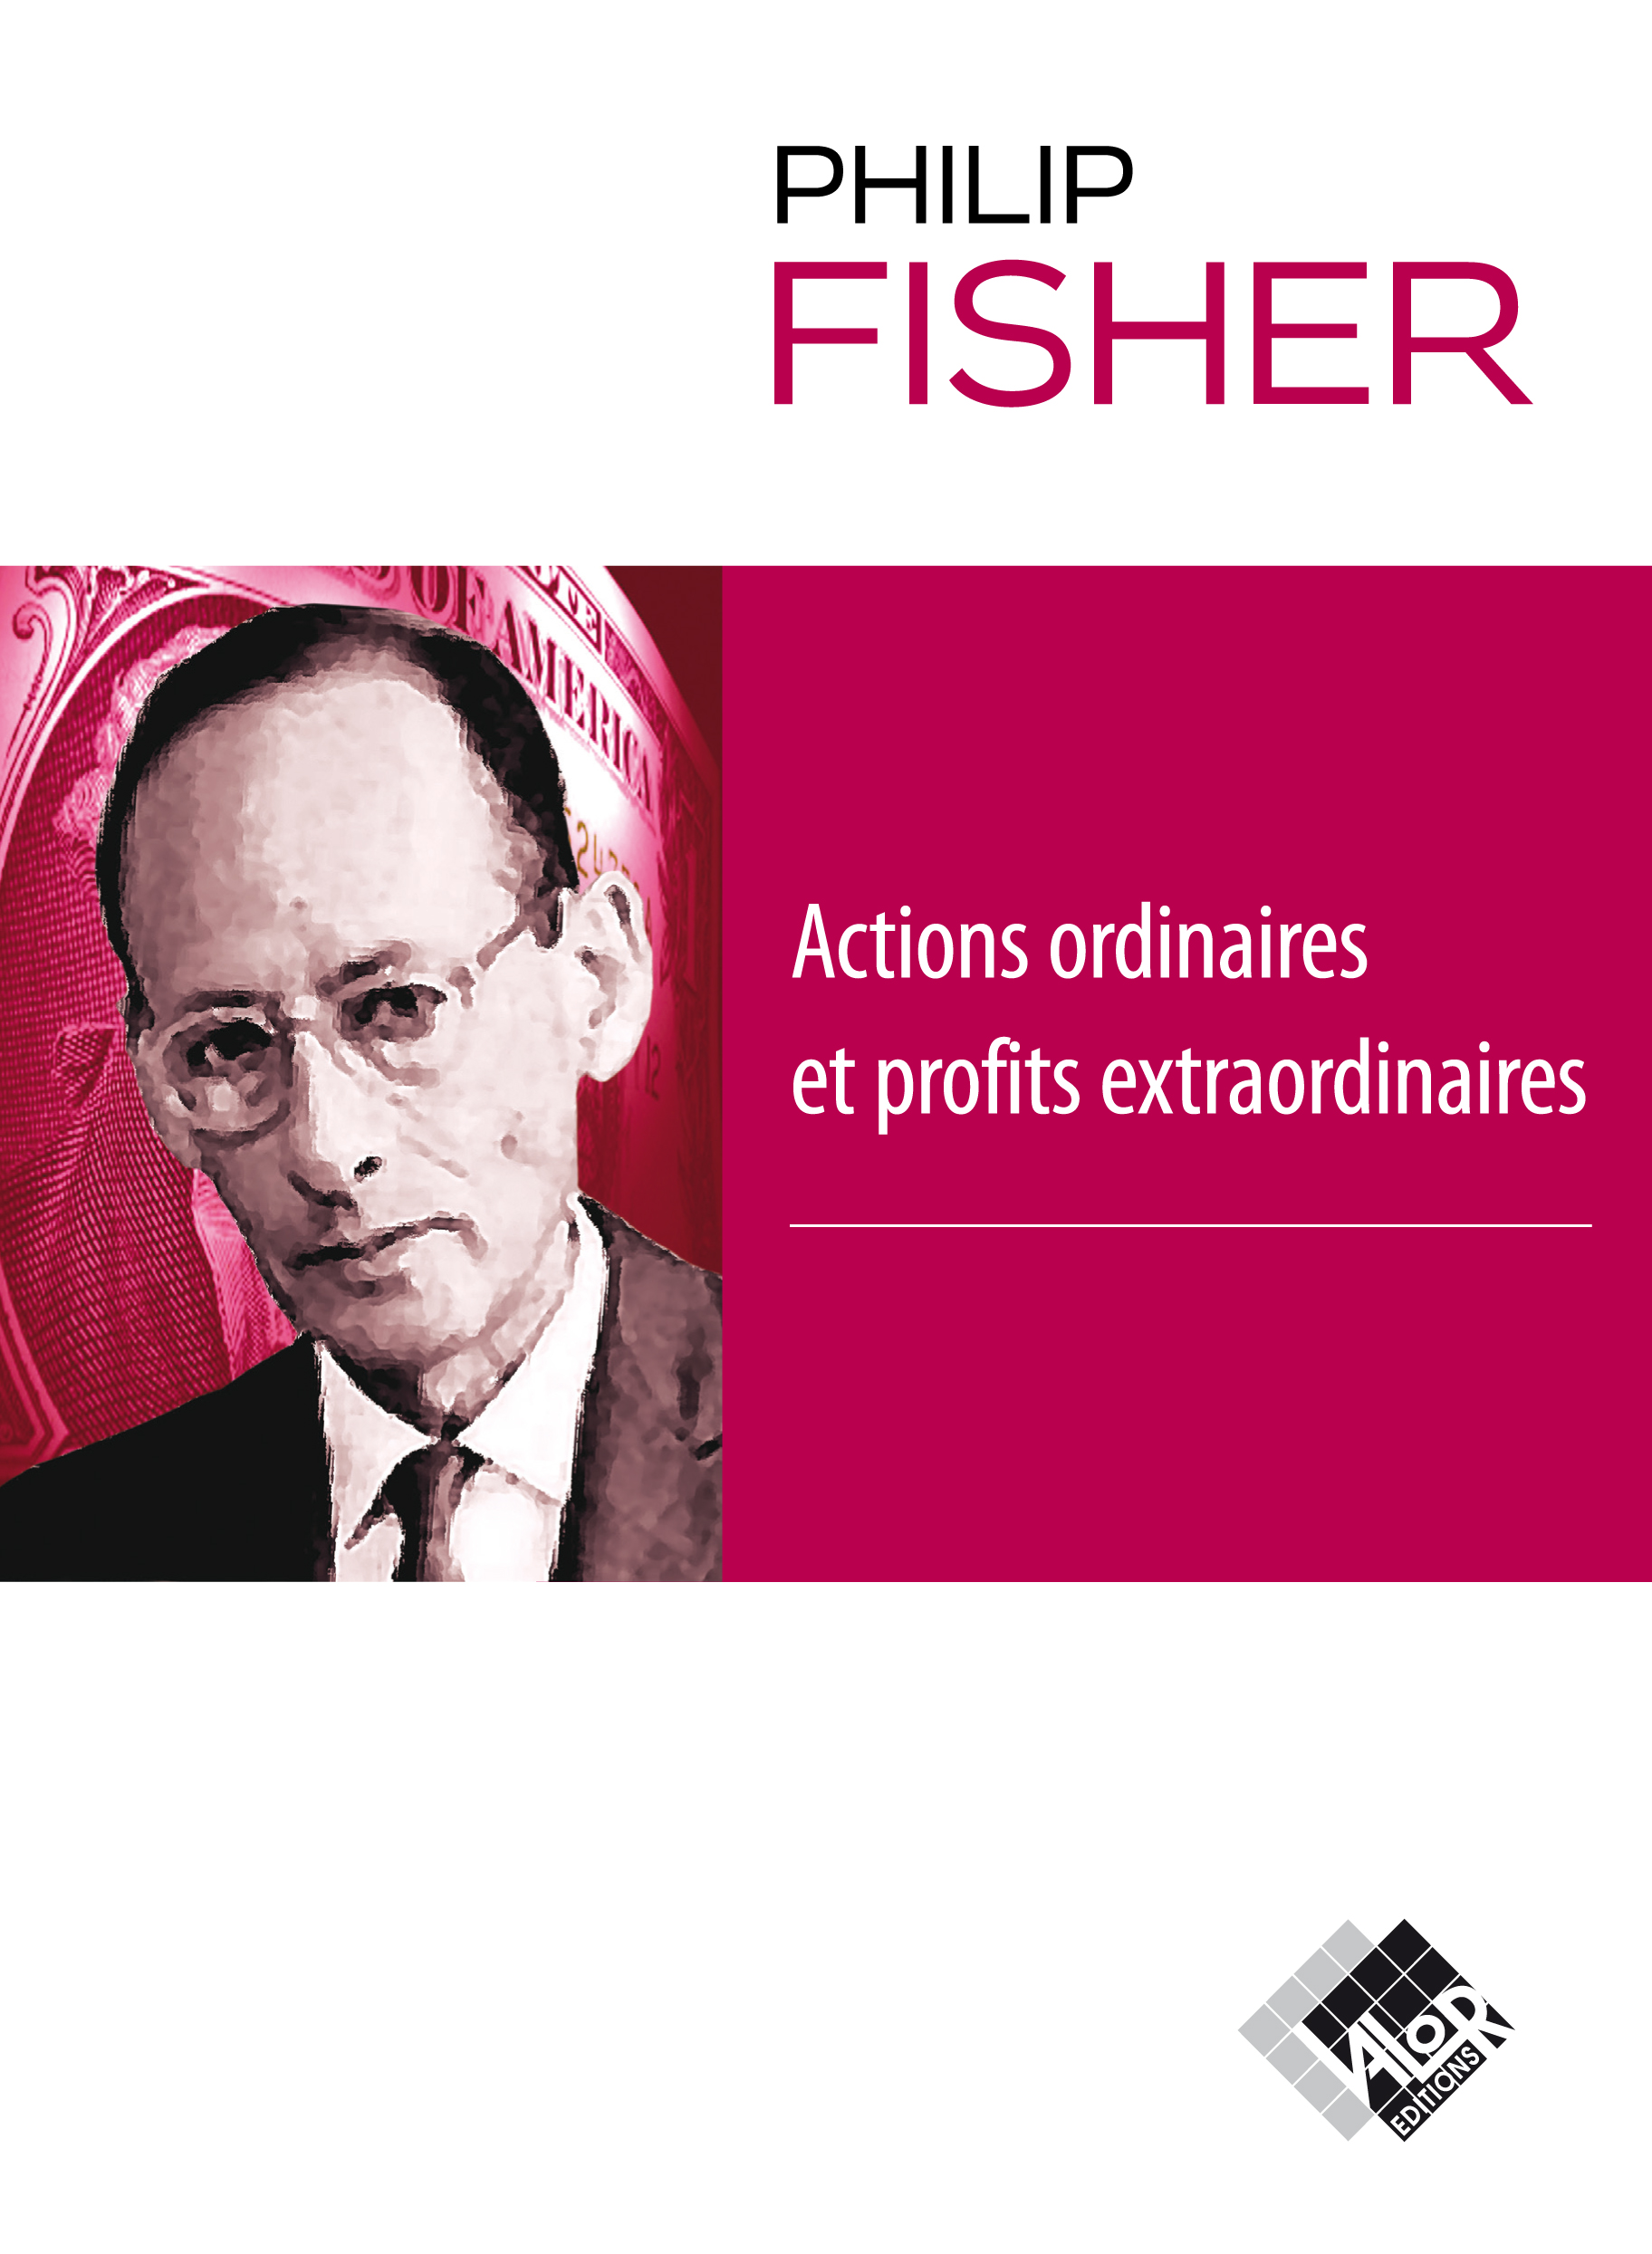 Actions ordinaires et profits extraordinaires / Philip Fisher (éditions Valor)